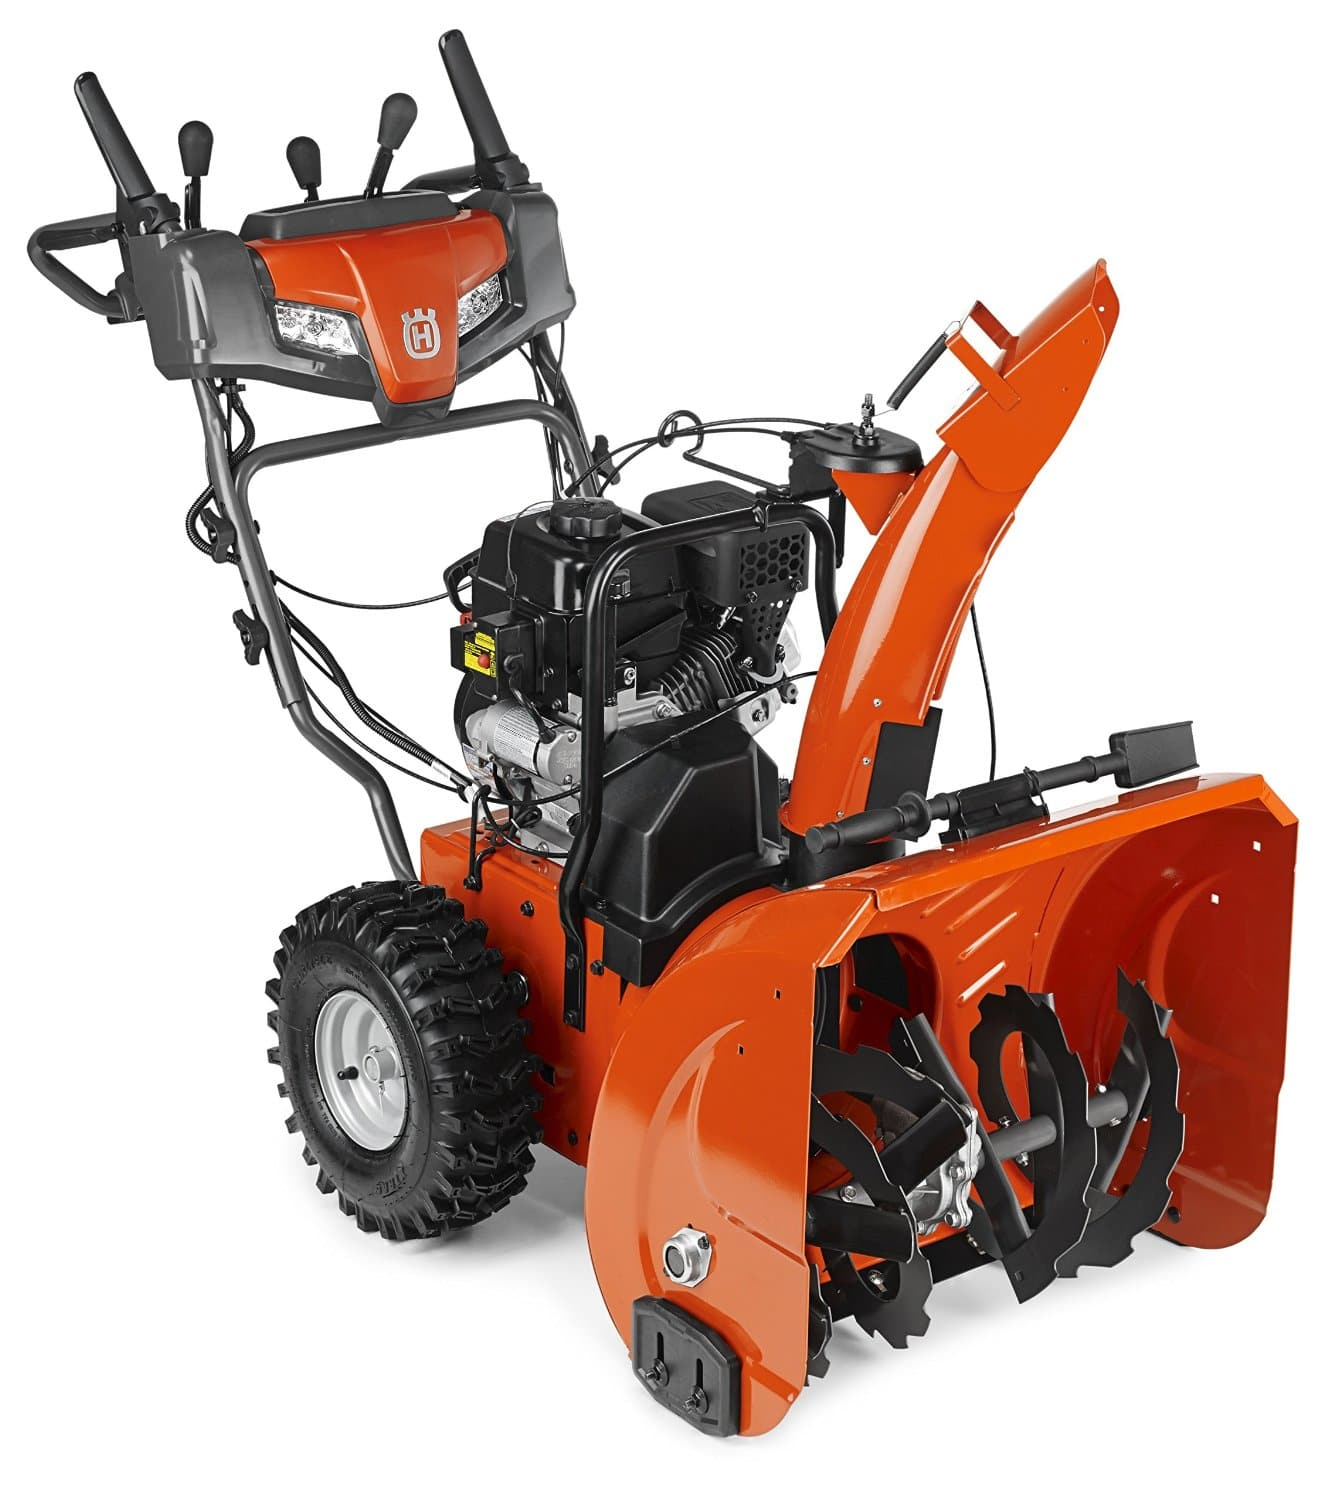 Compare Electric Snow Blowers : New best stage snow blower reviews top picks for